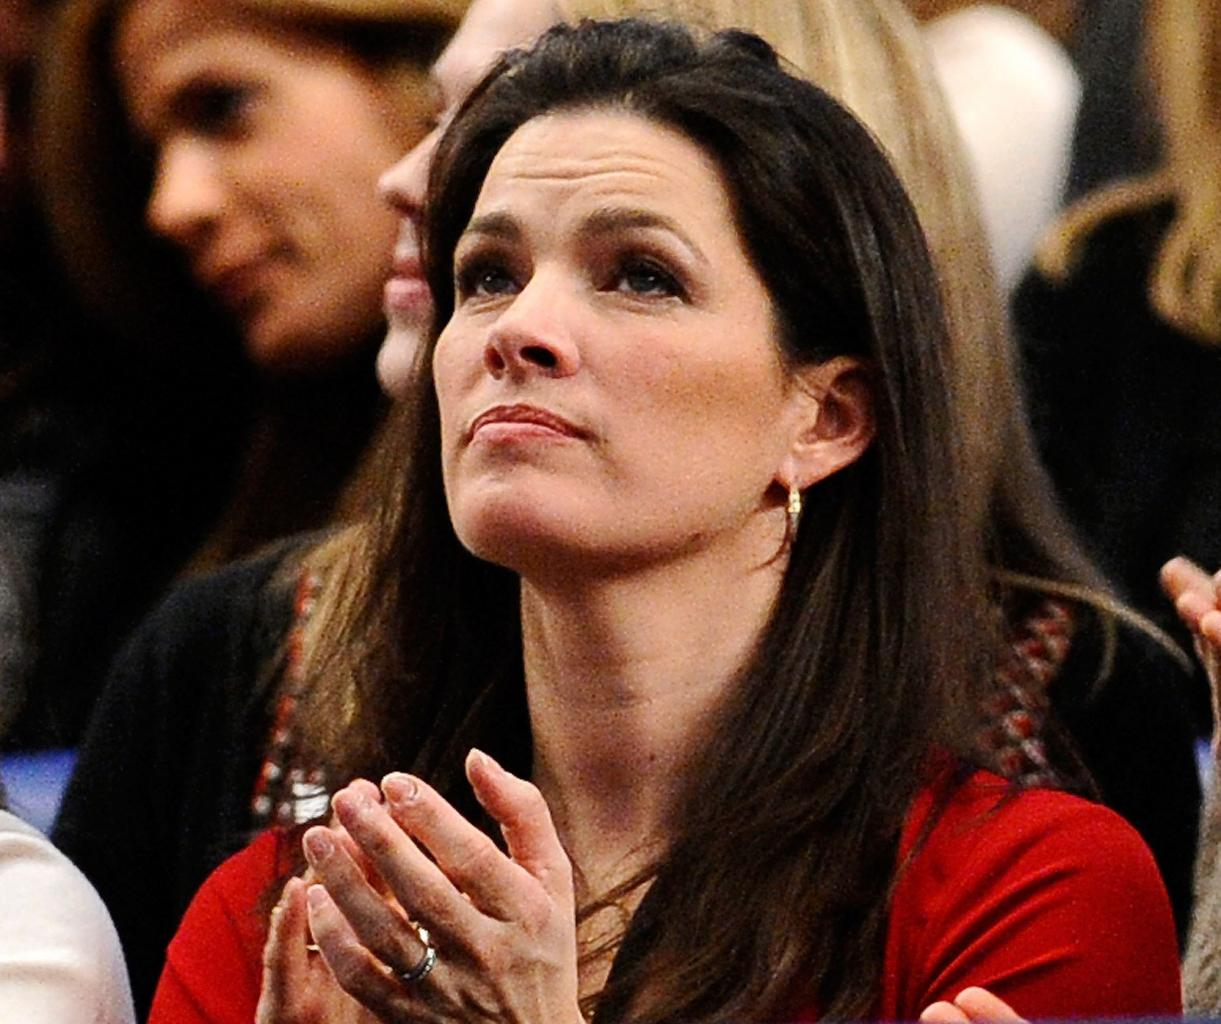 Why Nancy Kerrigan Opened Up About Her        Devastating      '  Miscarriages:        No One Should Feel Alone